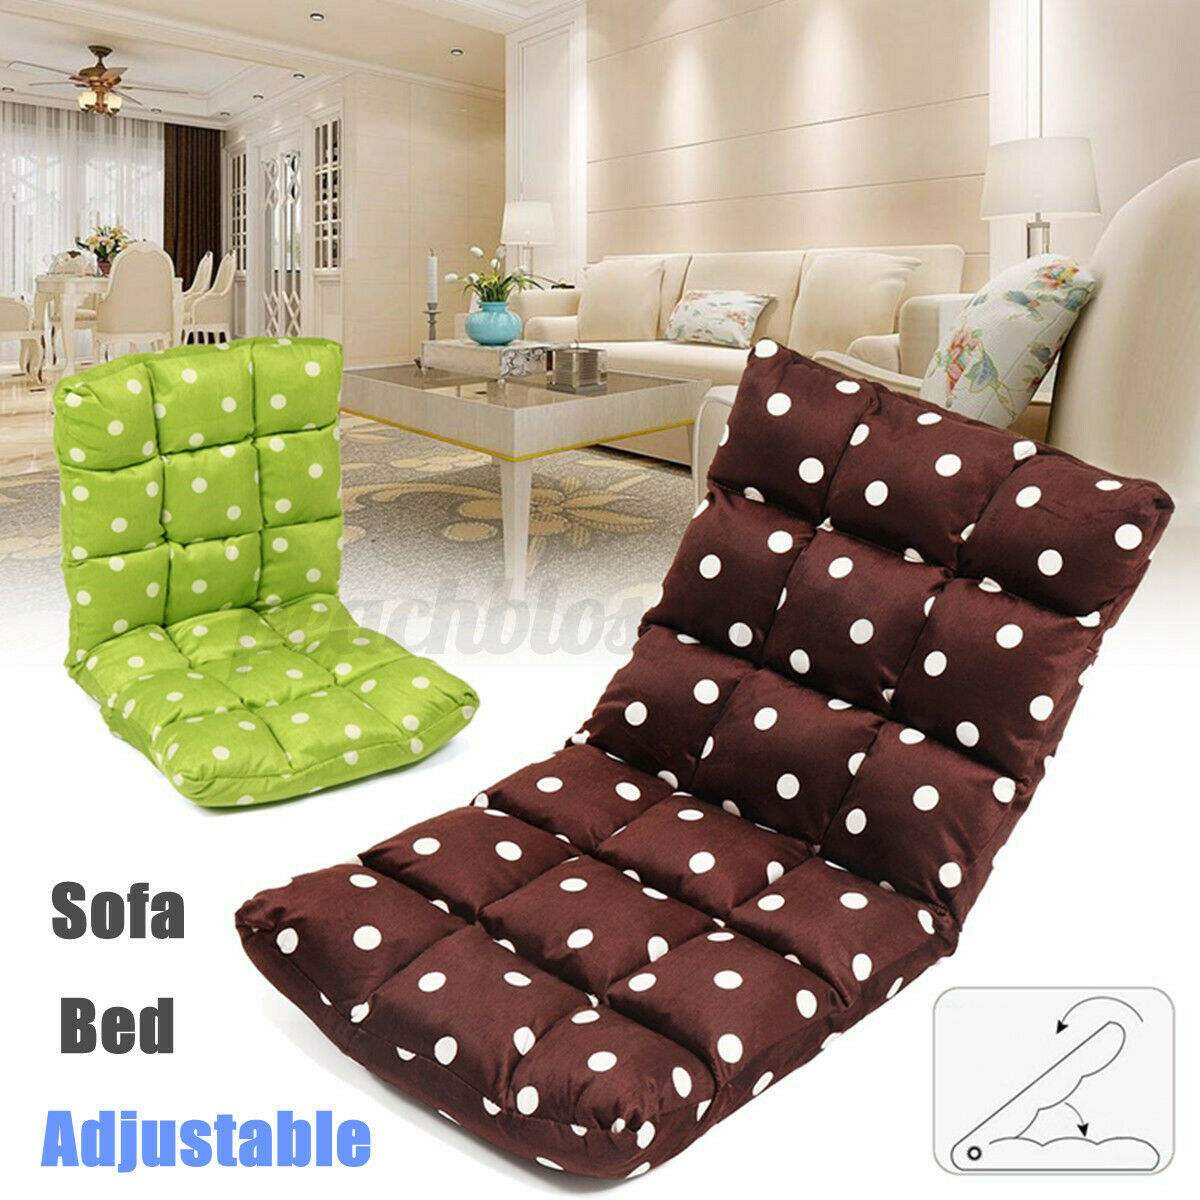 Folding Lazy Sofa Floor Chair Stylish Home Adjustable Sofa Couch Beds Coffee For Sale Online Ebay